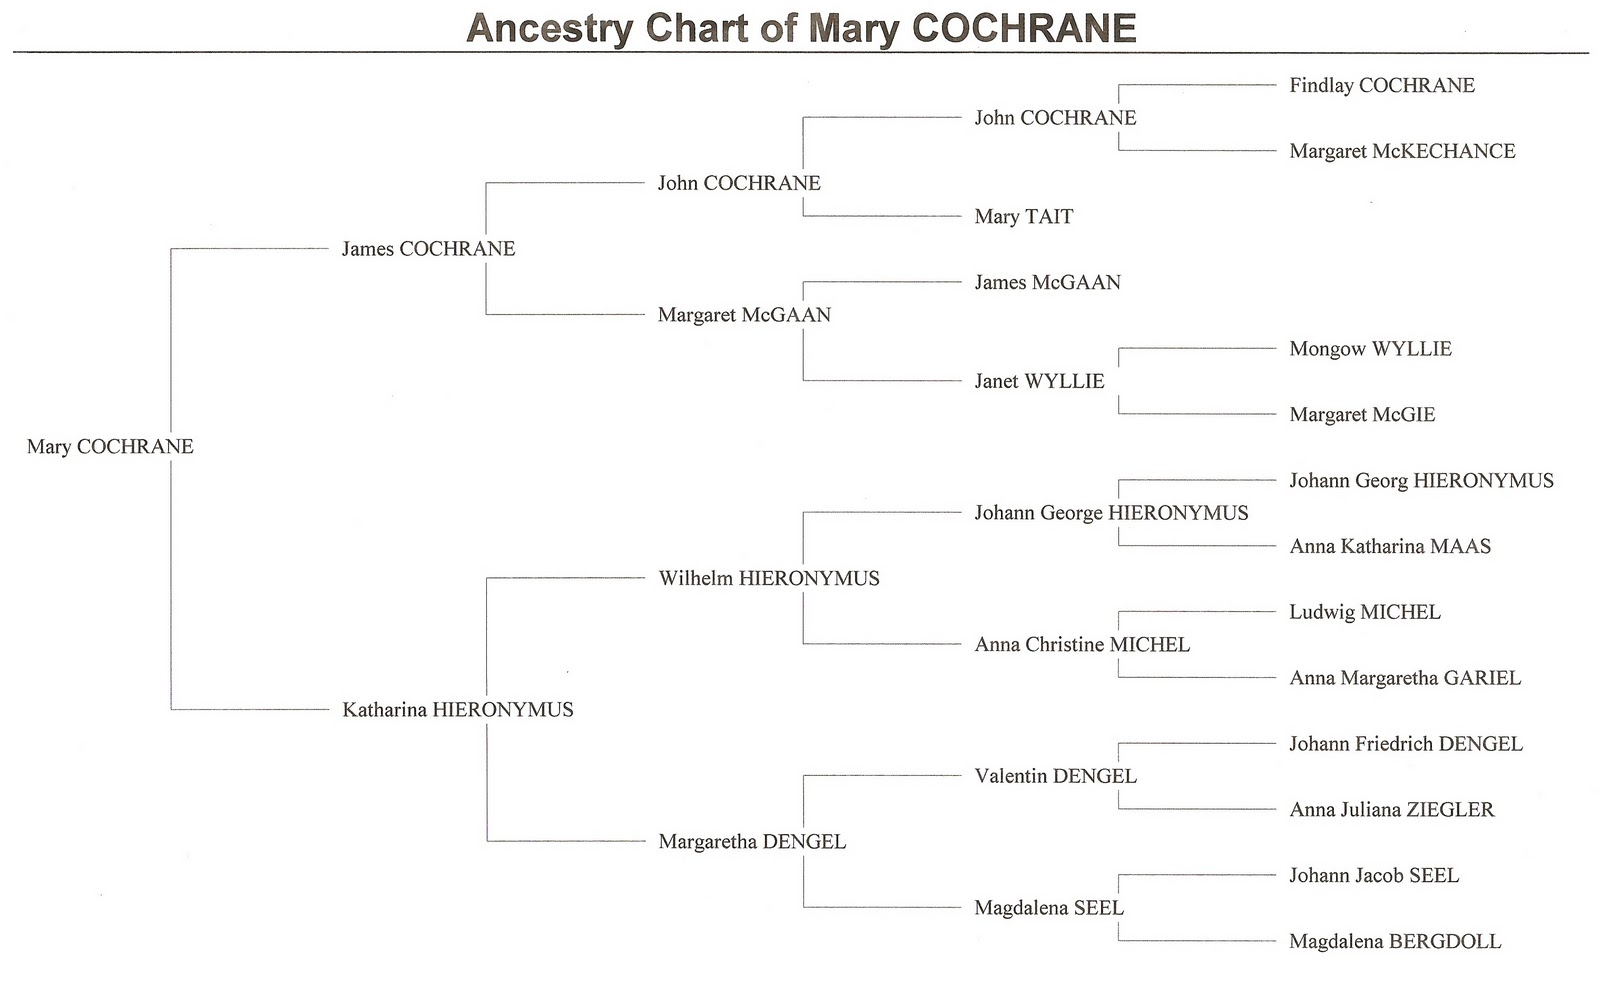 free ancestry chart